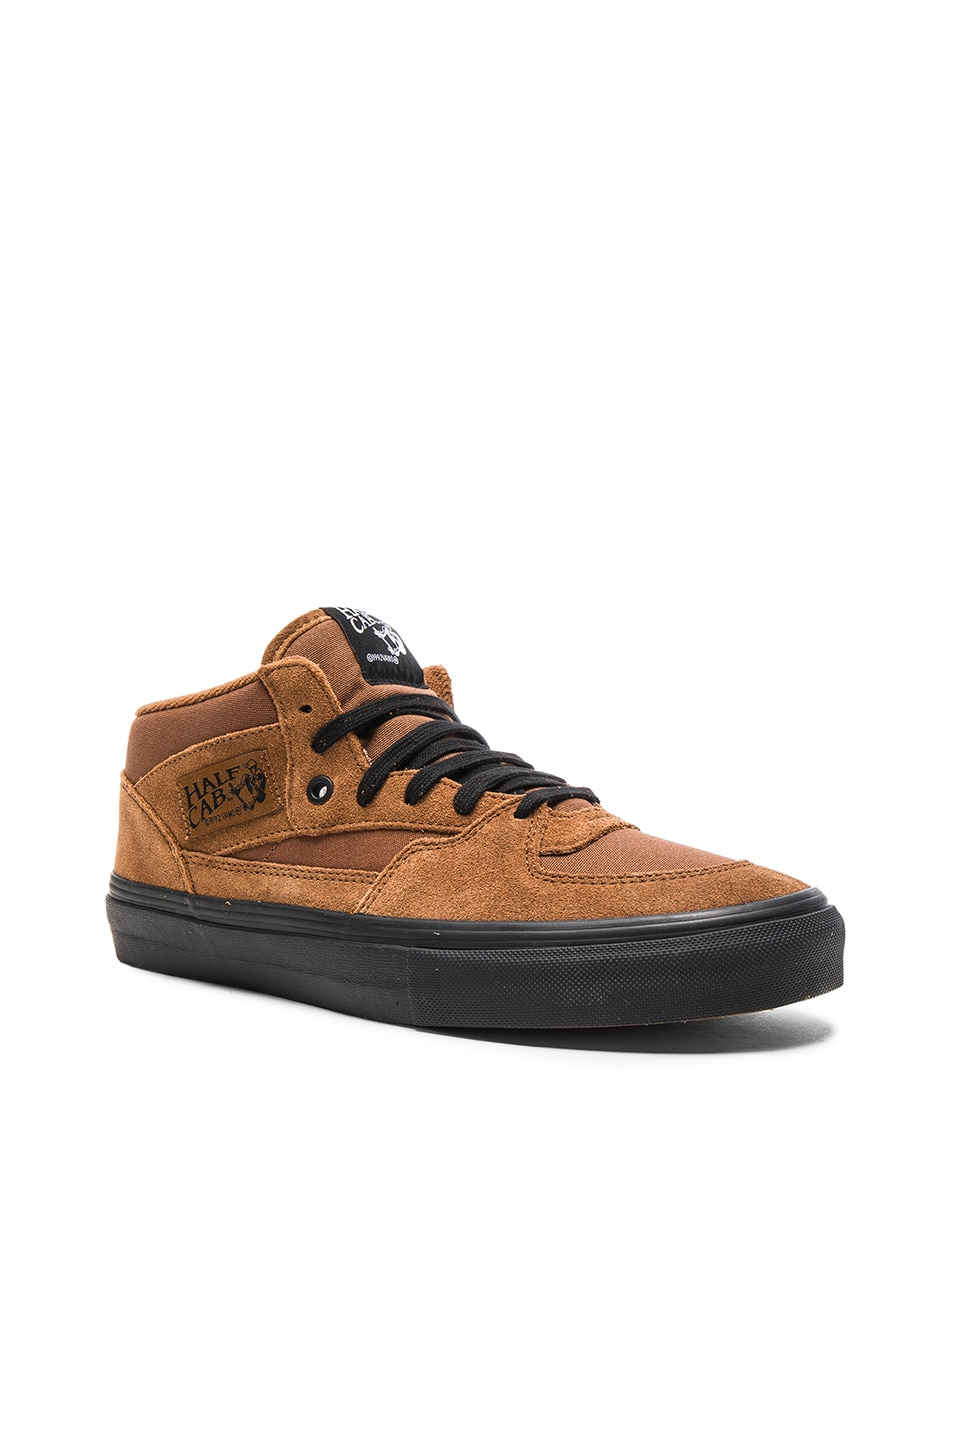 232bb221543626 Image 1 of Gosha Rubchinskiy x Vans Half Cab High Sneakers in Brown